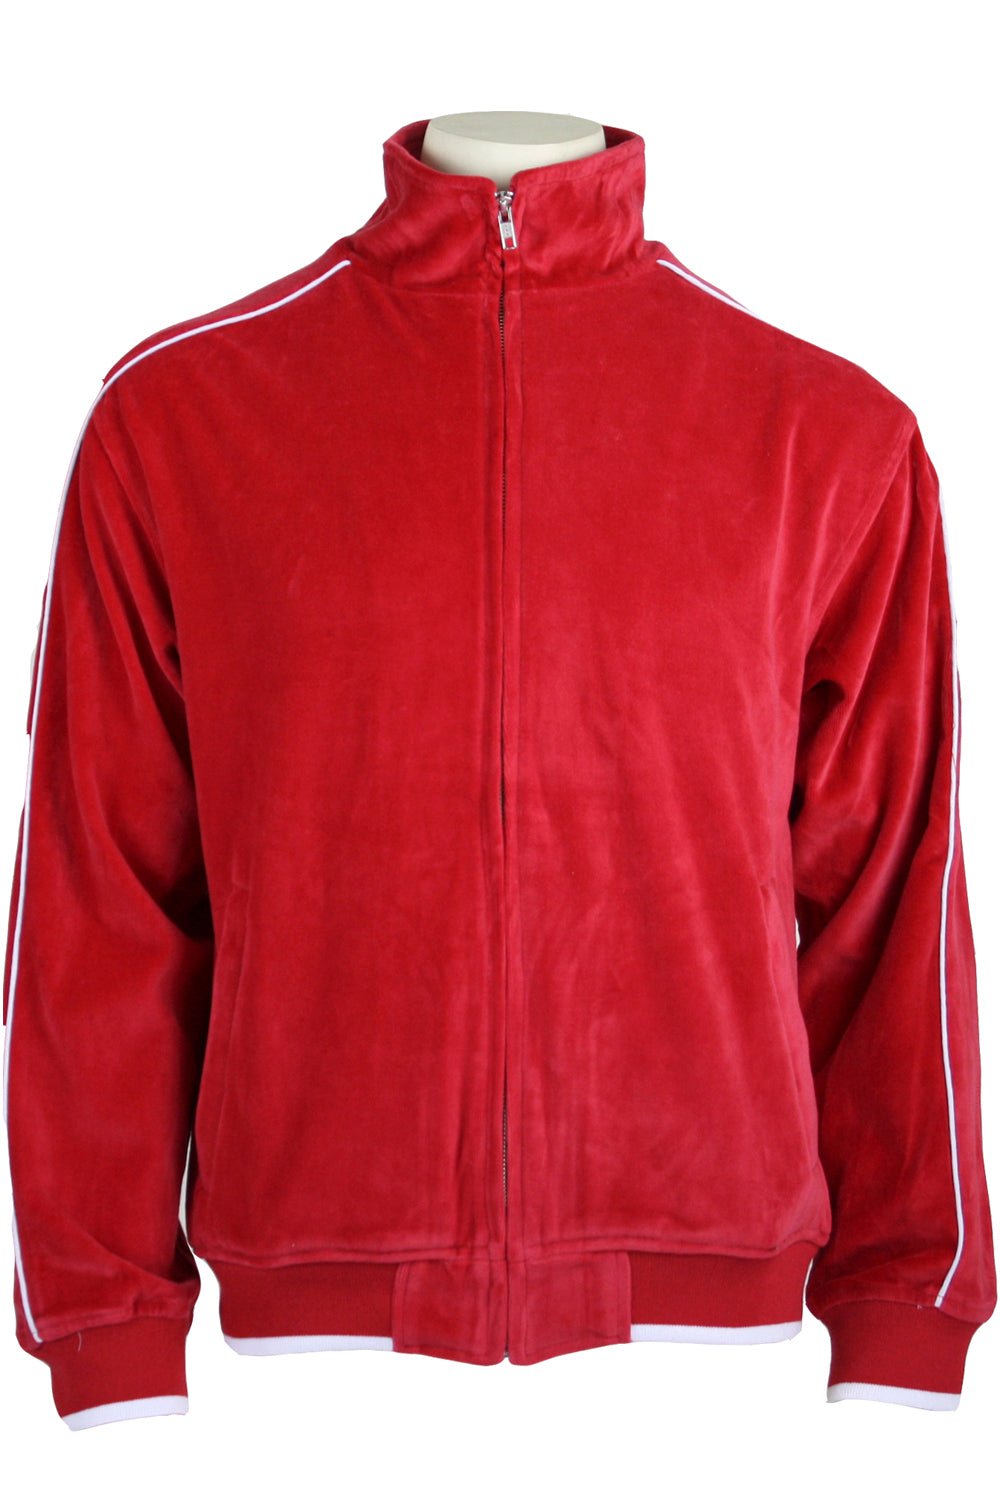 Mens Red Velour Tracksuit With White Piping Sweatsedo